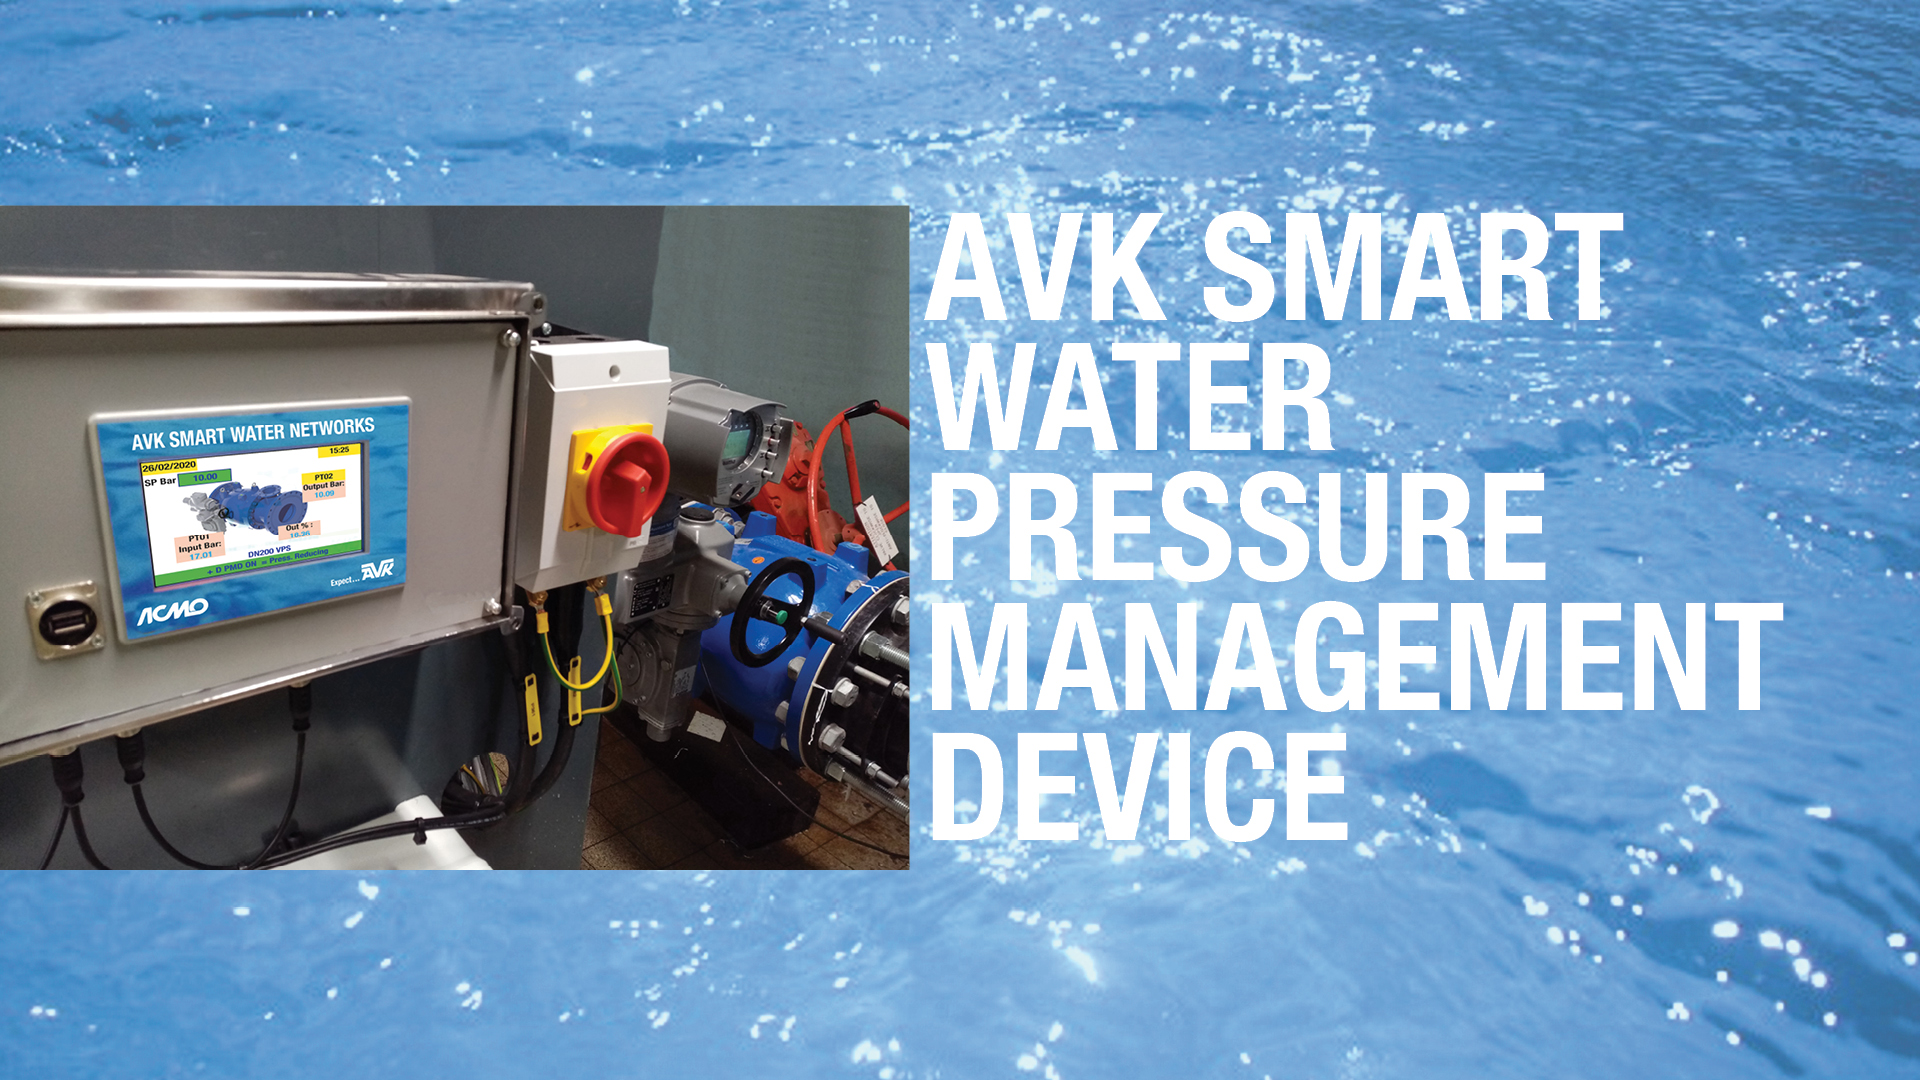 AVK Smart water Pressure management device